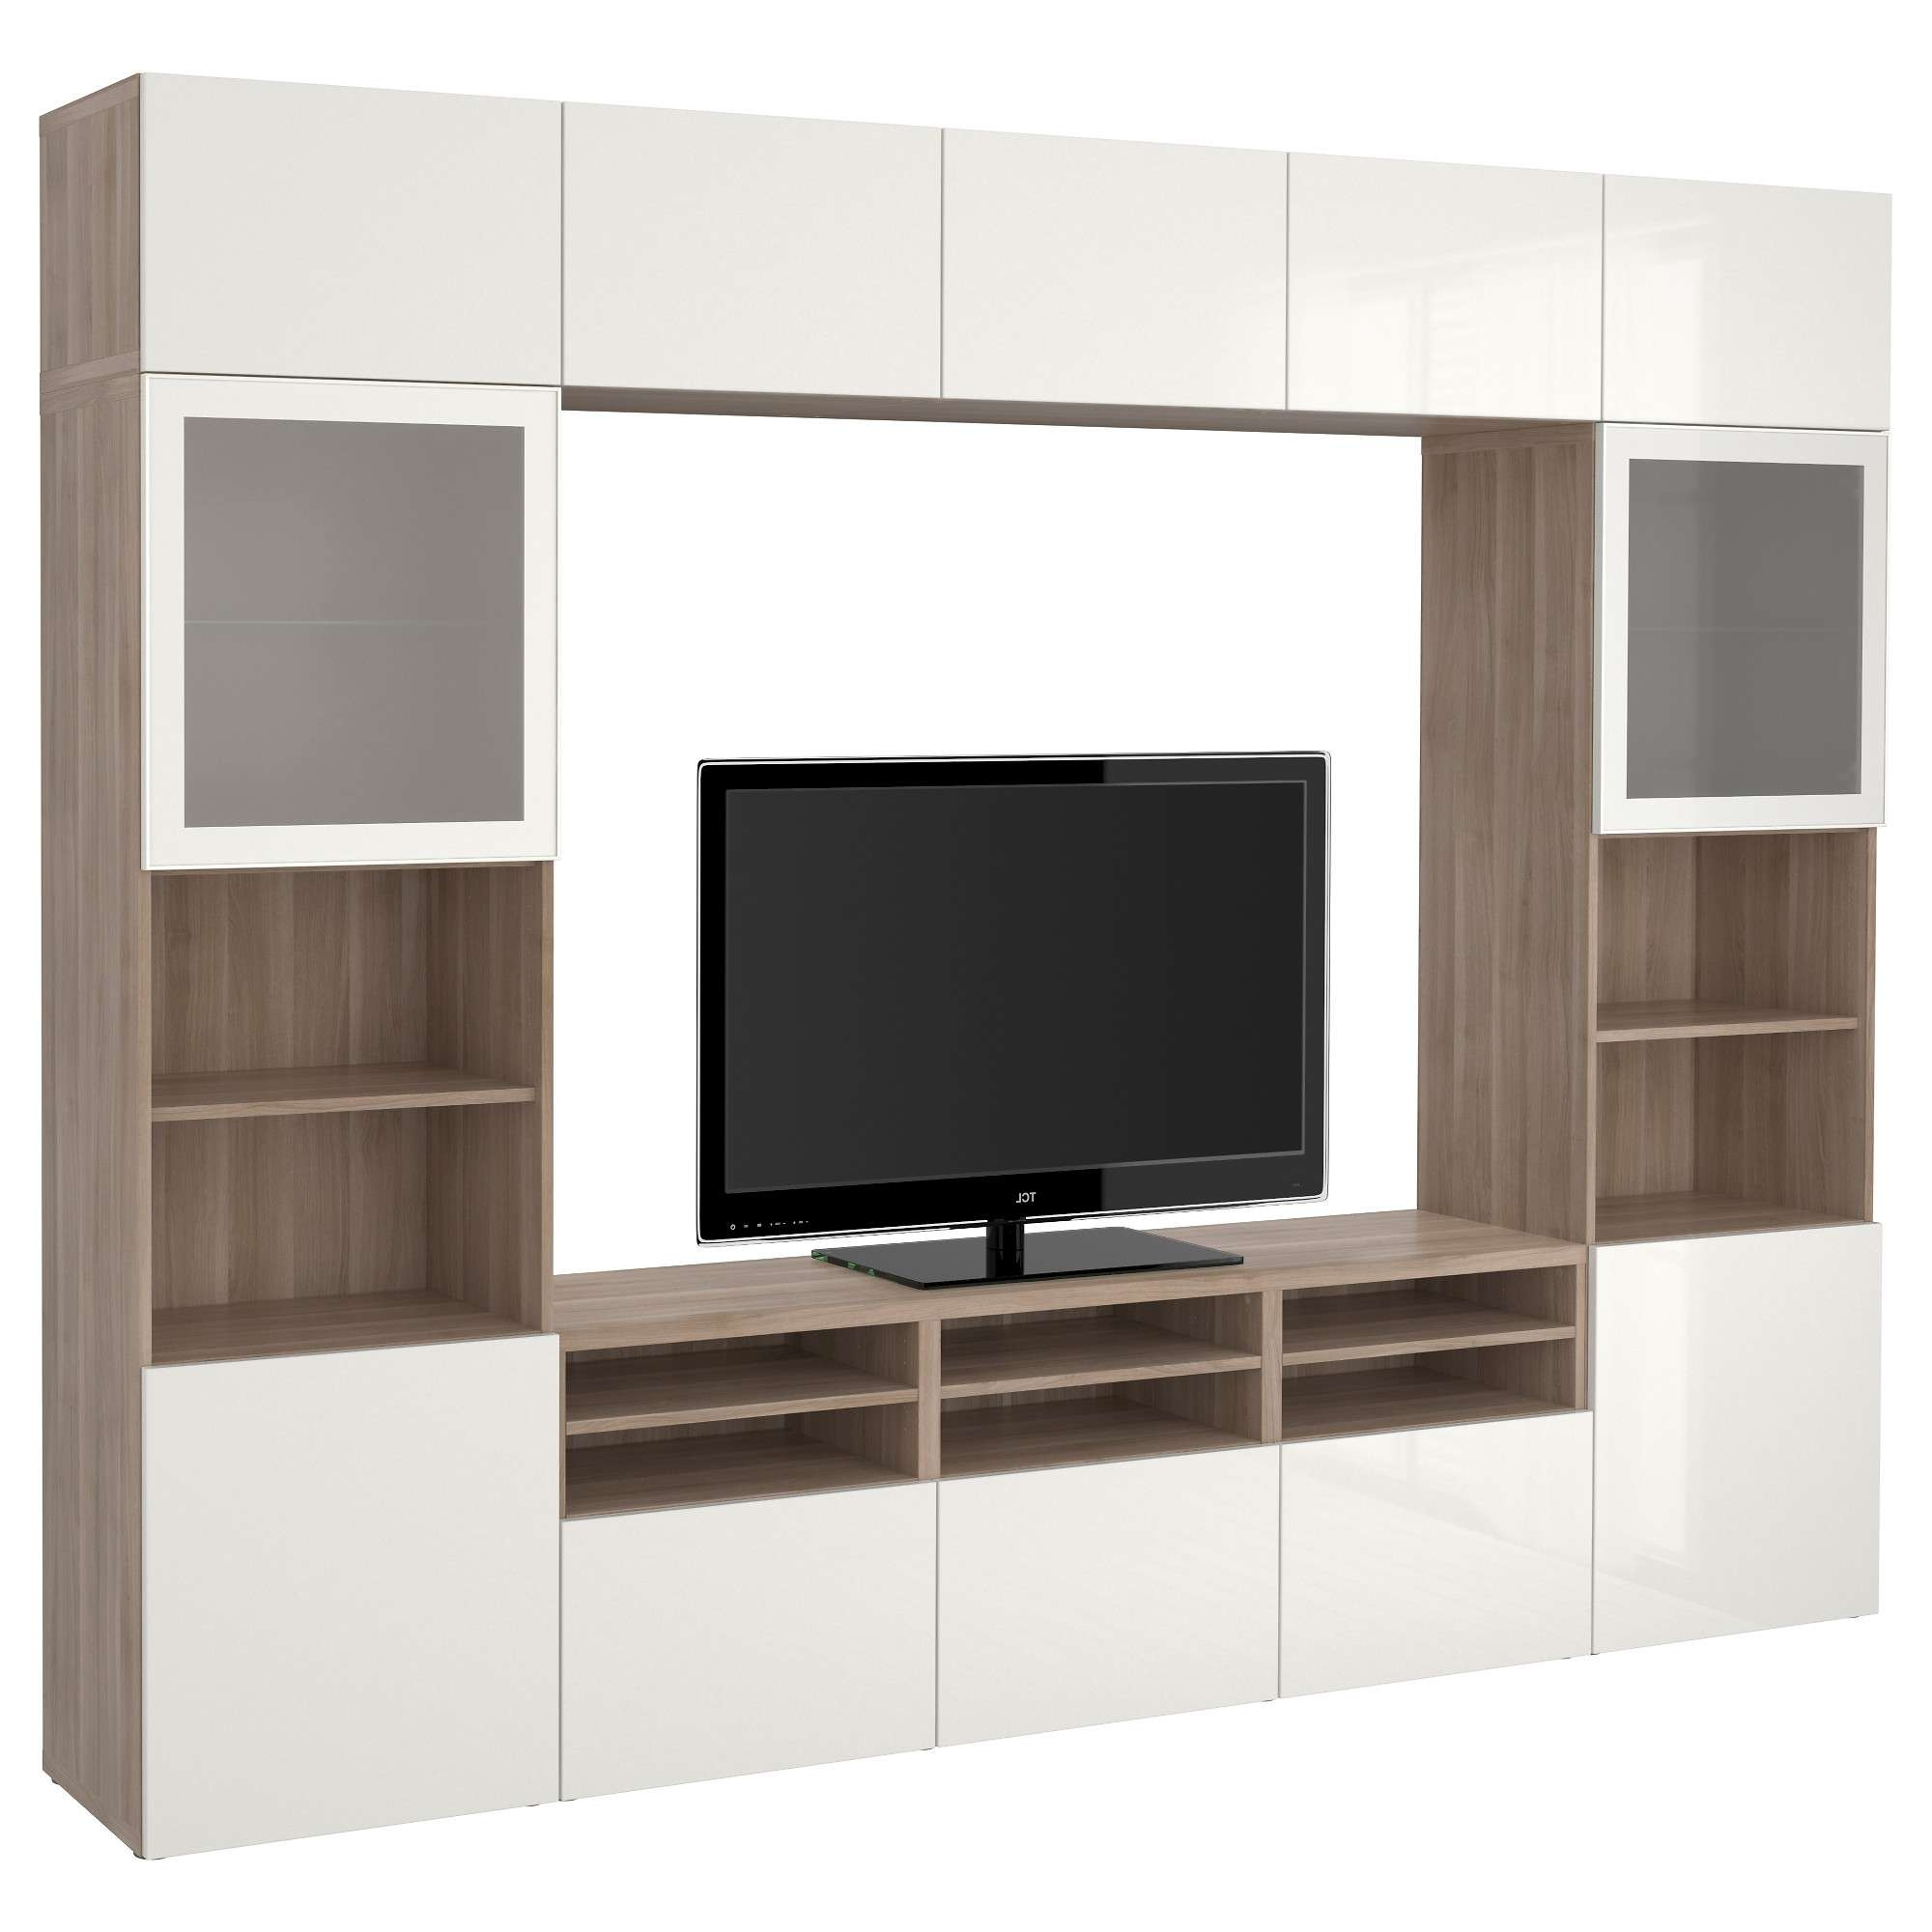 Modest Decoration Ikea Media Cabinet Best Home Furniture Design Pertaining To Tv Cabinets With Storage (View 6 of 20)